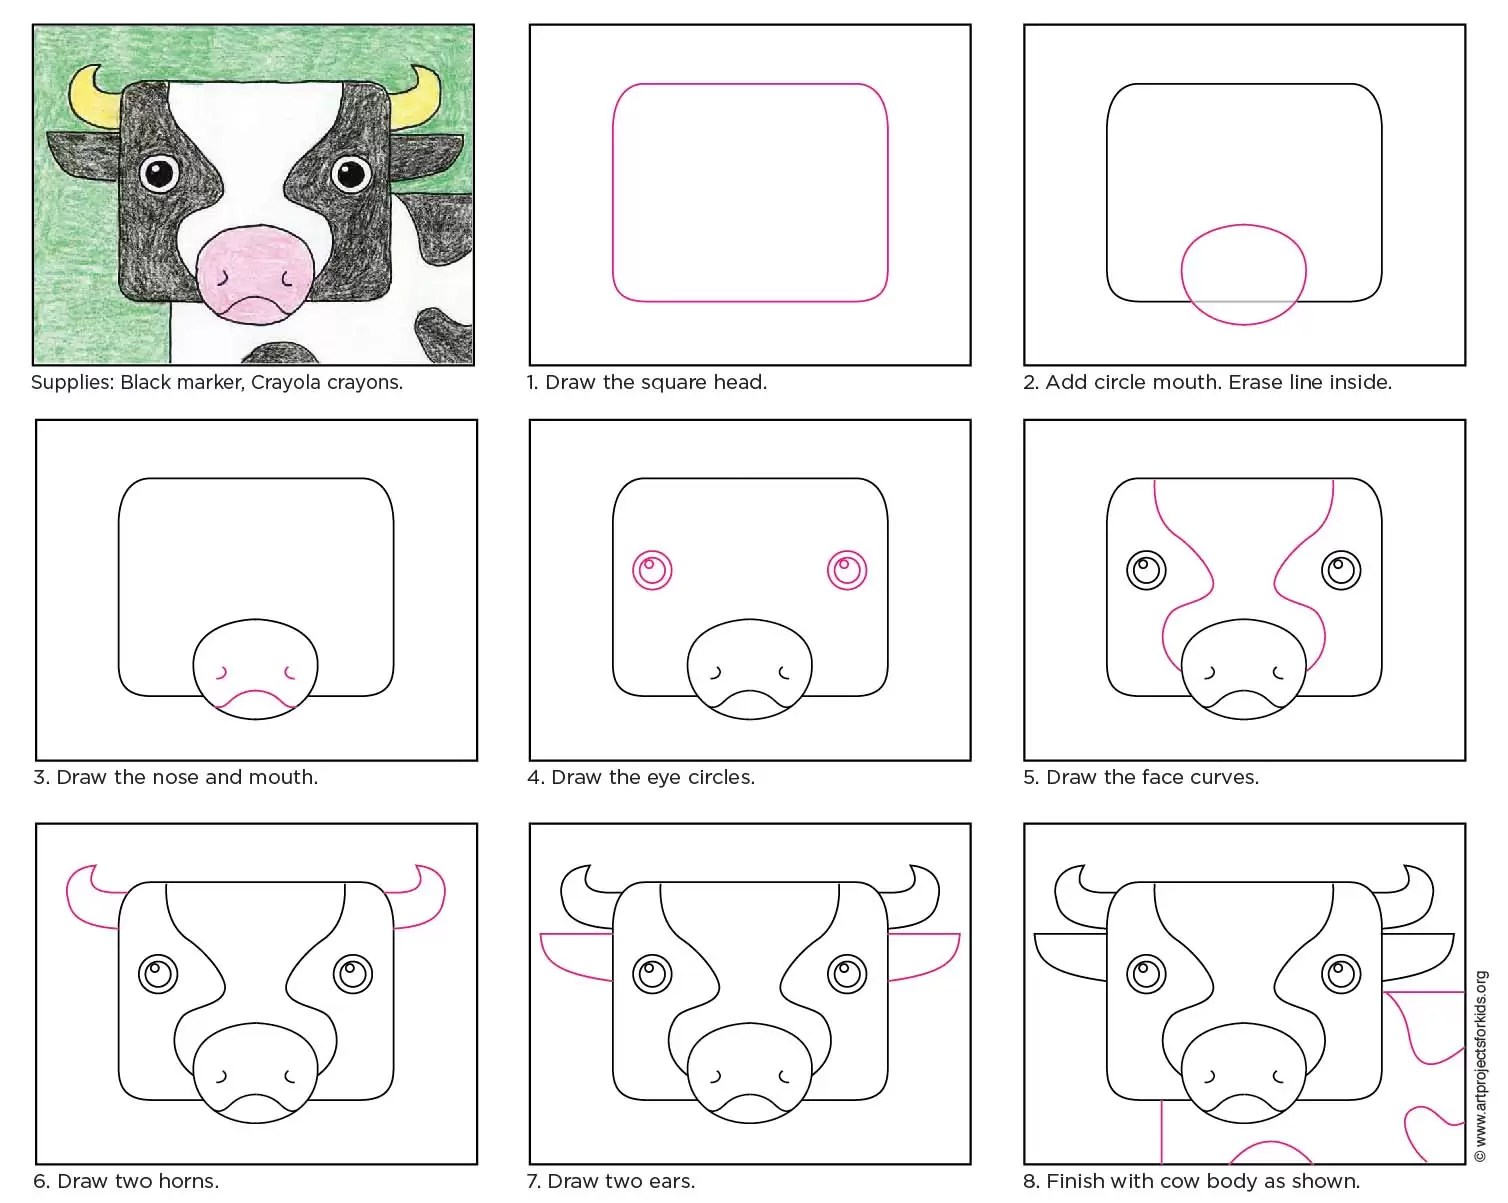 Cow Head Art Projects For Kids